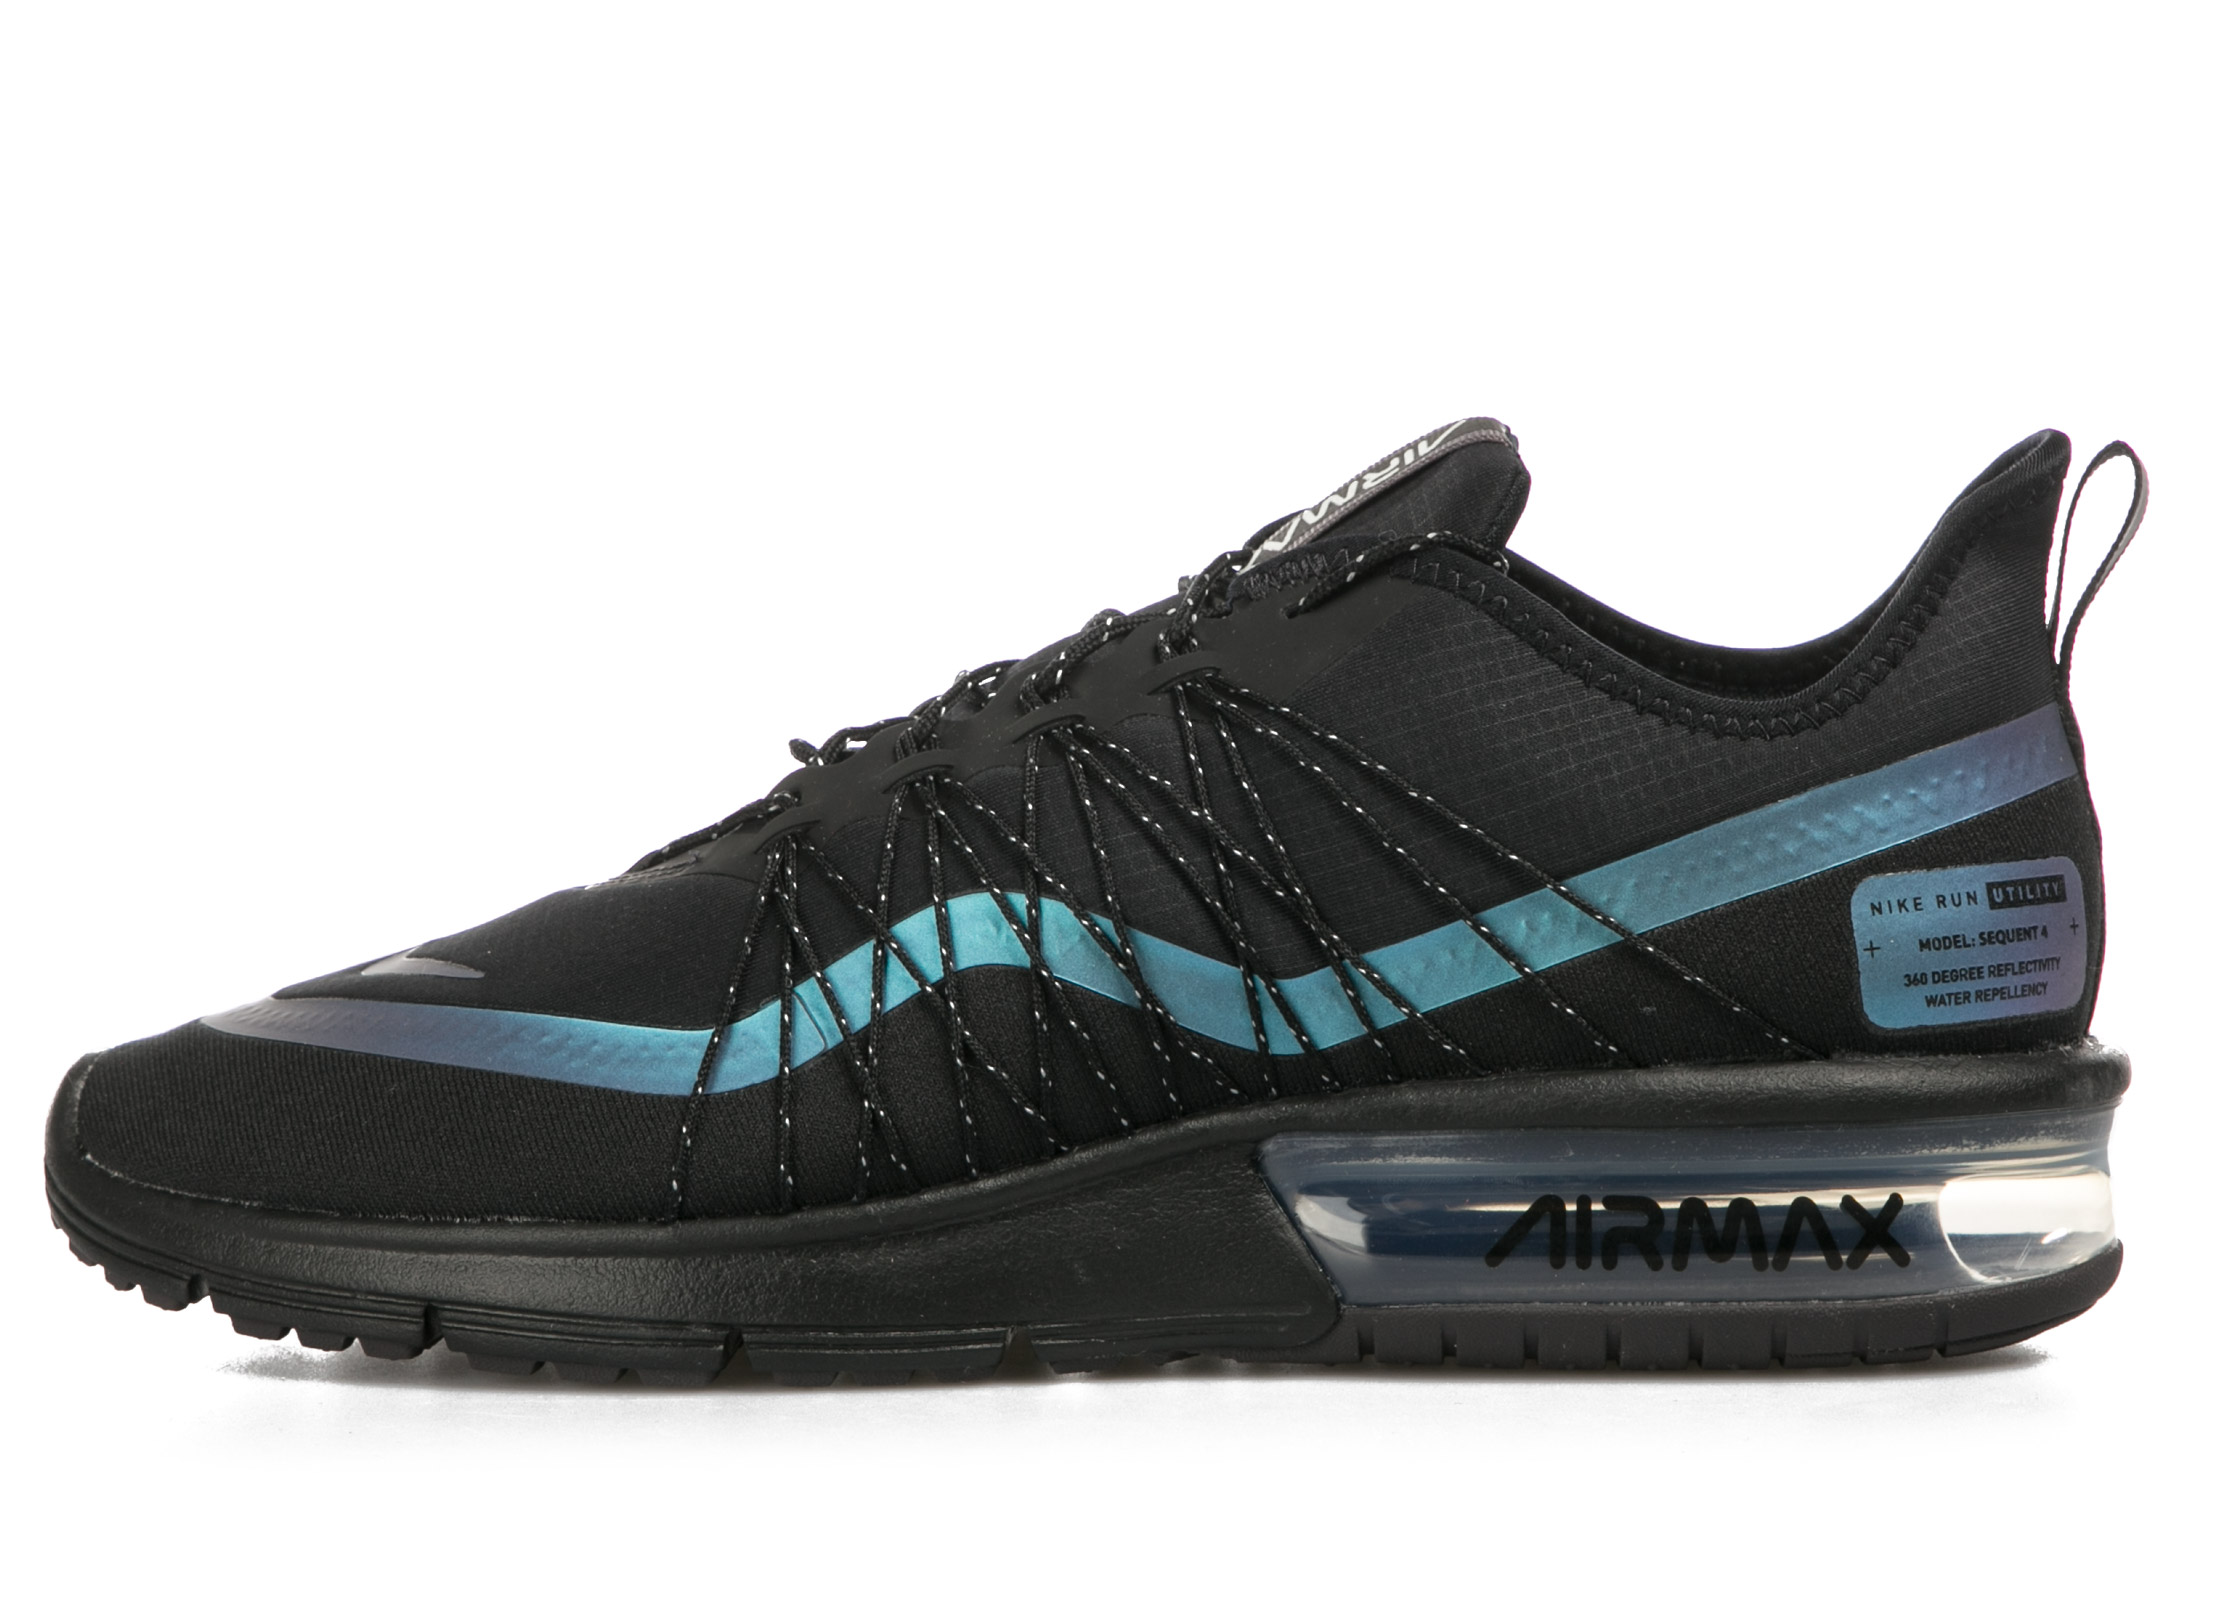 NIKE AIR MAX SEQUENT 4 SHIELD «THROWBACK FUTURE» AV3236-005 Μαύρο